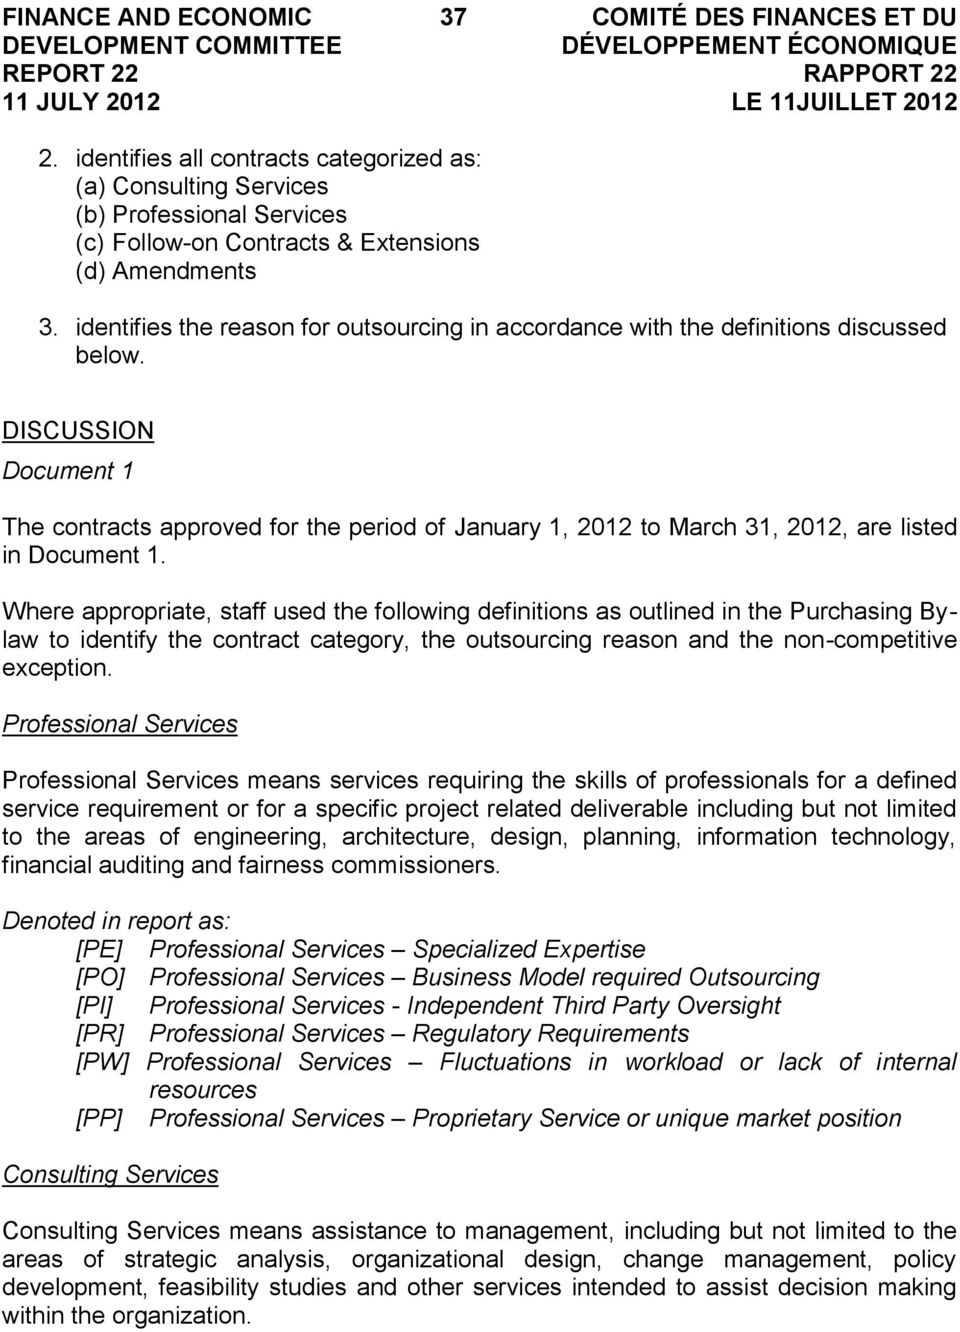 DISCUSSION Document 1 The contracts approved for the period of January 1, 2012 to March 31, 2012, are listed in Document 1.